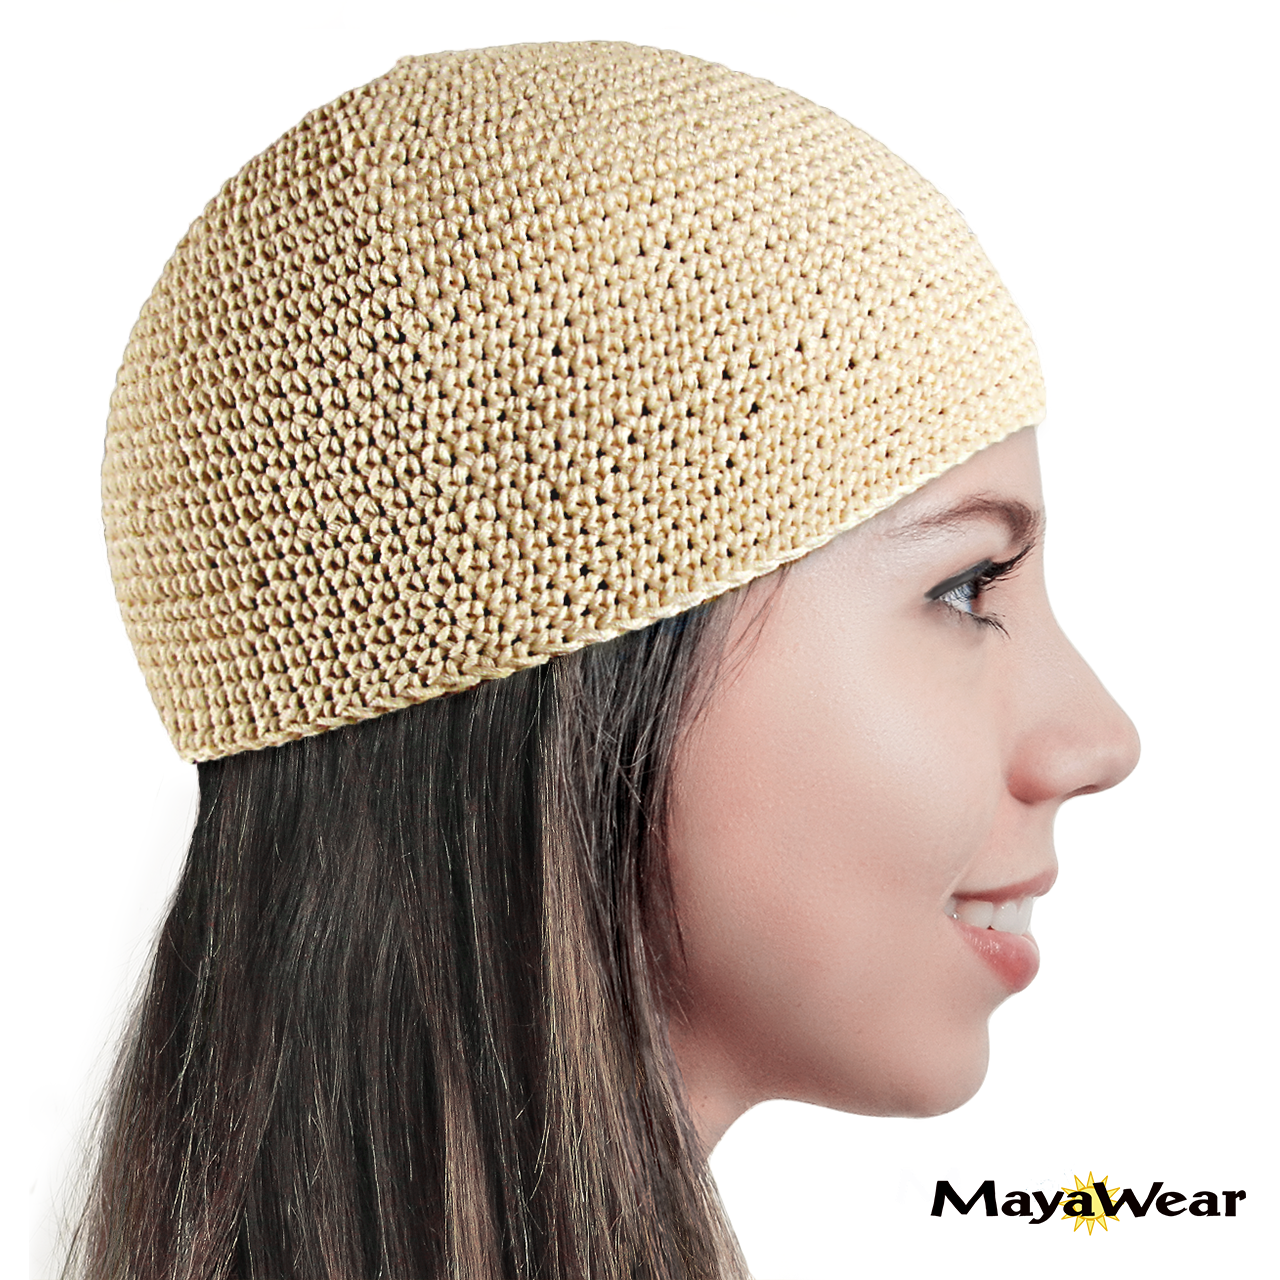 #KUF44  Ivory (Off-White, Natural) Beanie Kufi. 100% Cotton. Made in Guatemala. https://www.mayawear.com